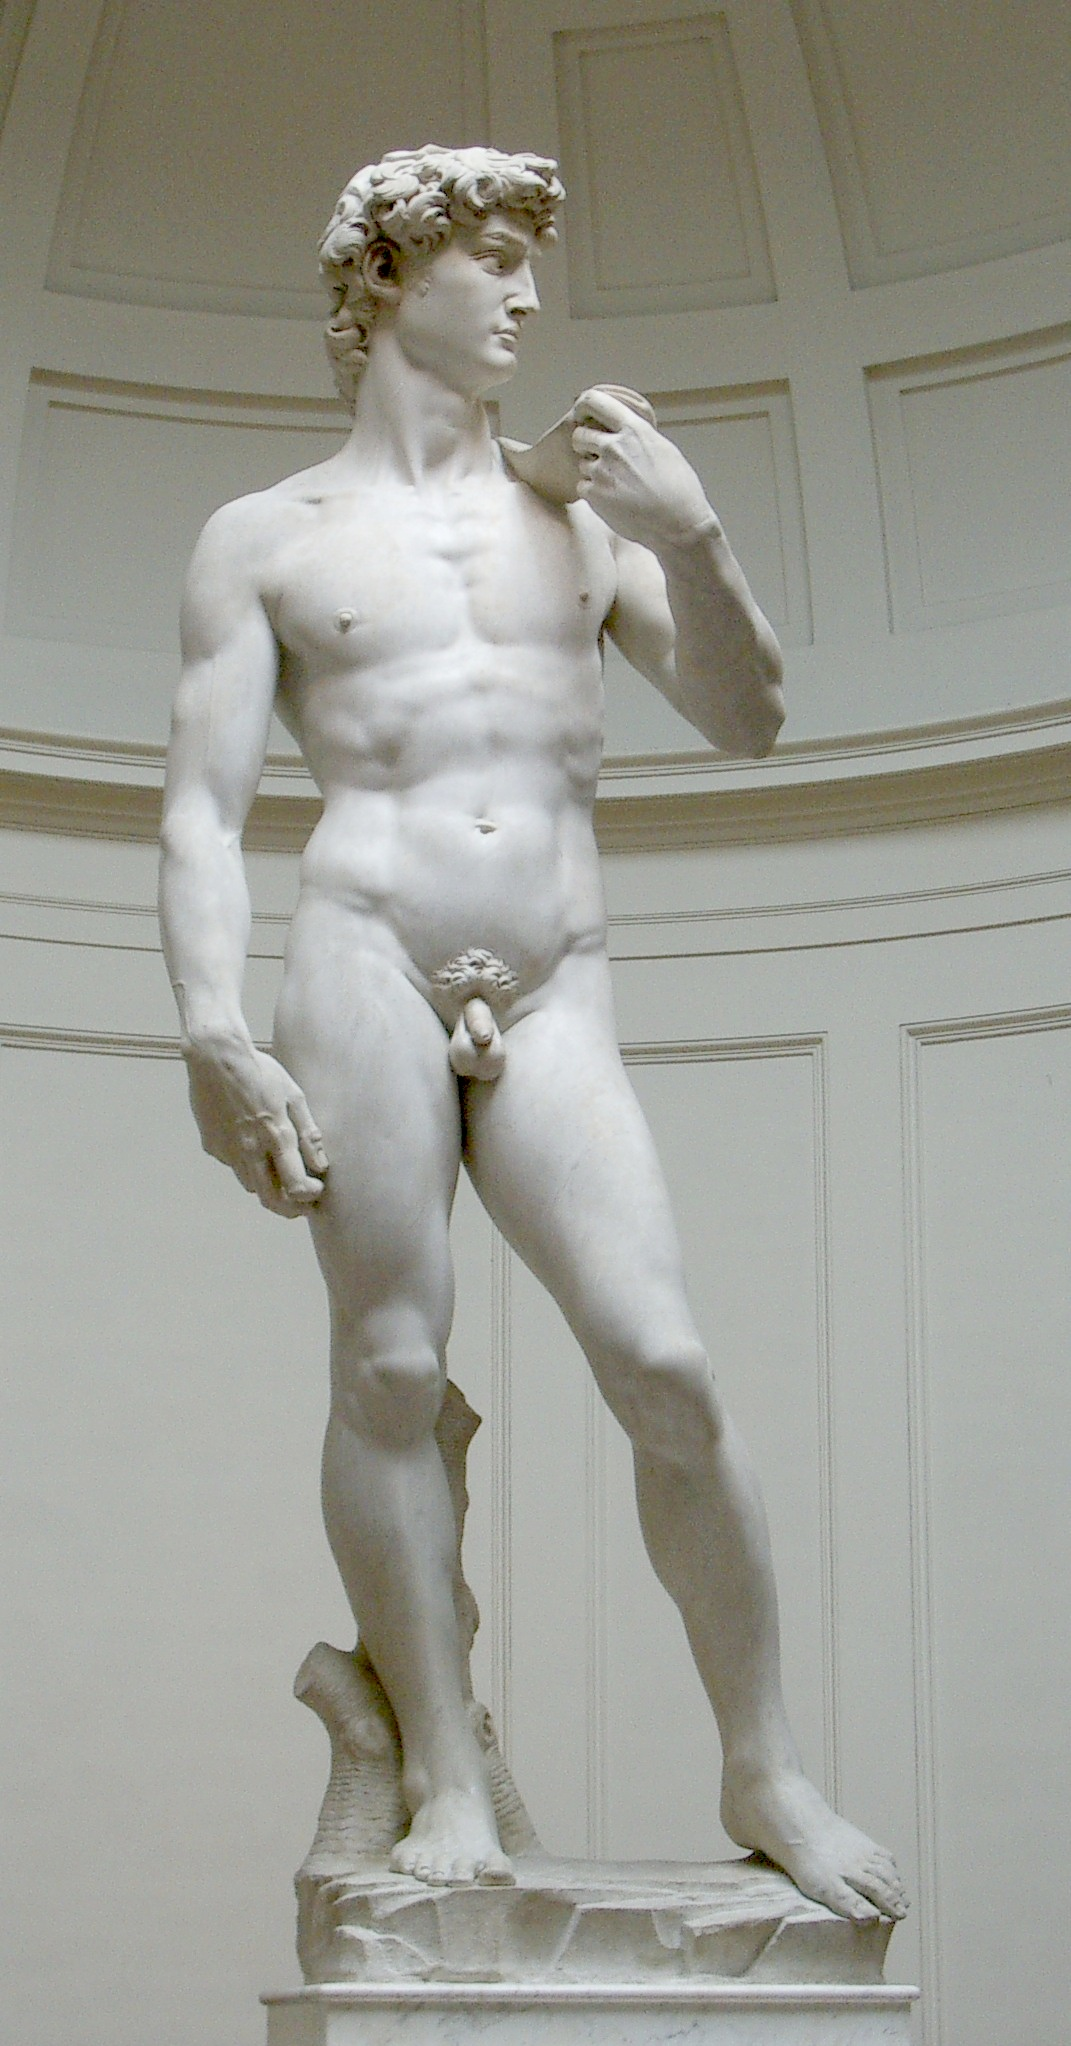 Michelangelo, David, 1501-1504, marble, 17', Galleria dell'Accademia, Florence, Photo by Rico Hell via Wikimedia Commons, Public Domain, Creative Commons Attribution-Share Alike 3.0 License.